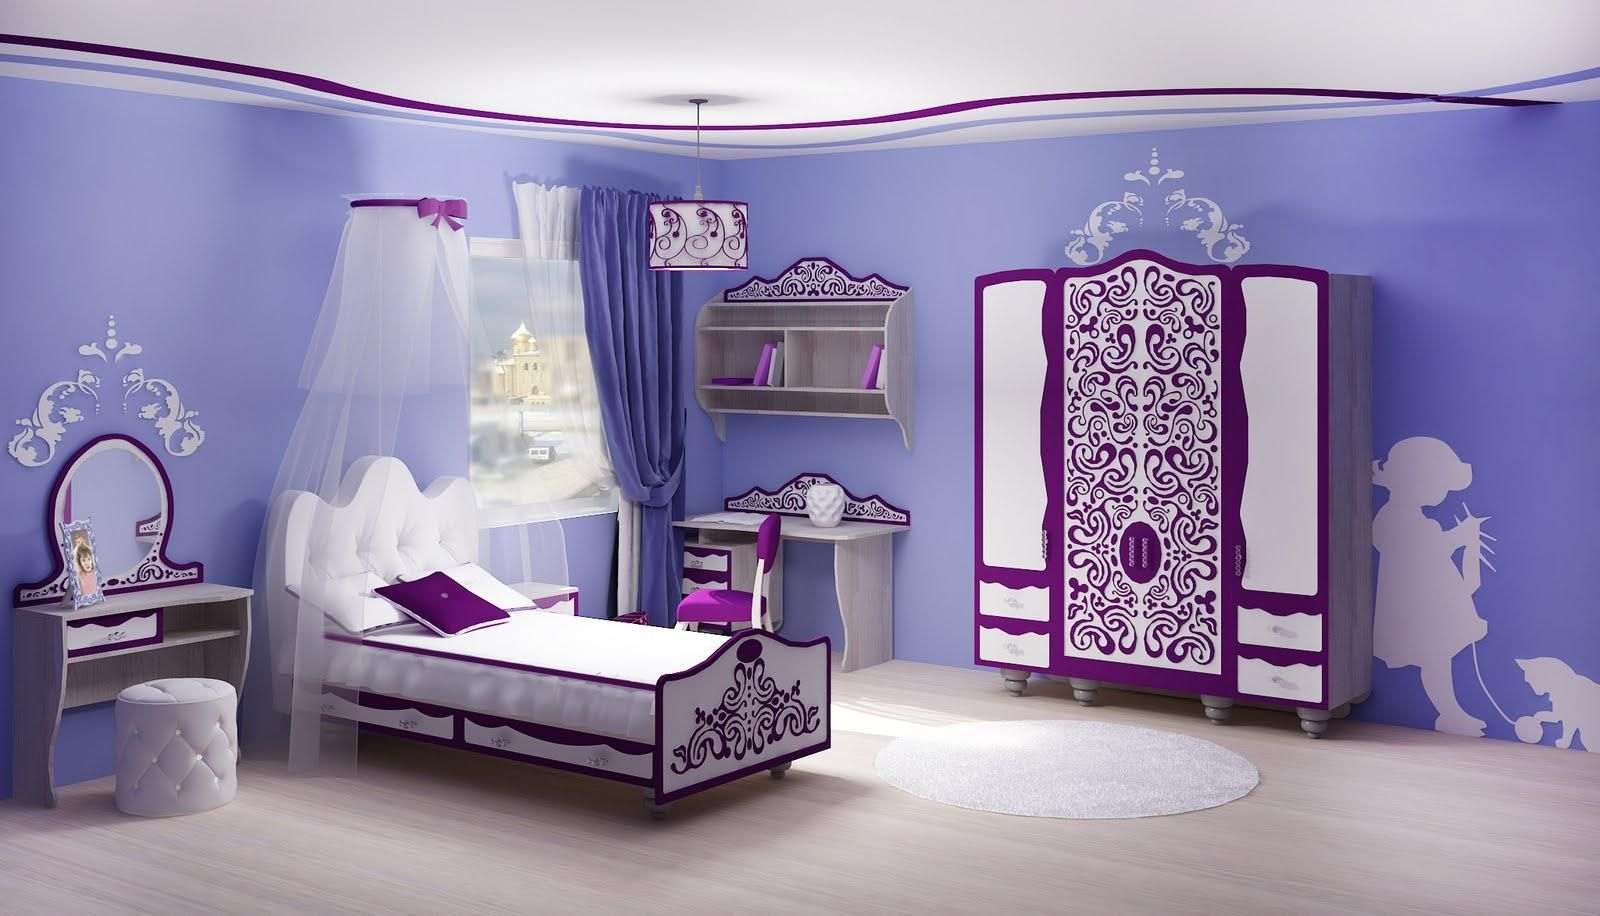 Creative Wall Colors For Teenage Girls Bedrooms diy ideas creative wall arts to decorate your house idea for tween bedroom Cool Idea To Change The Look Of Straight Walls